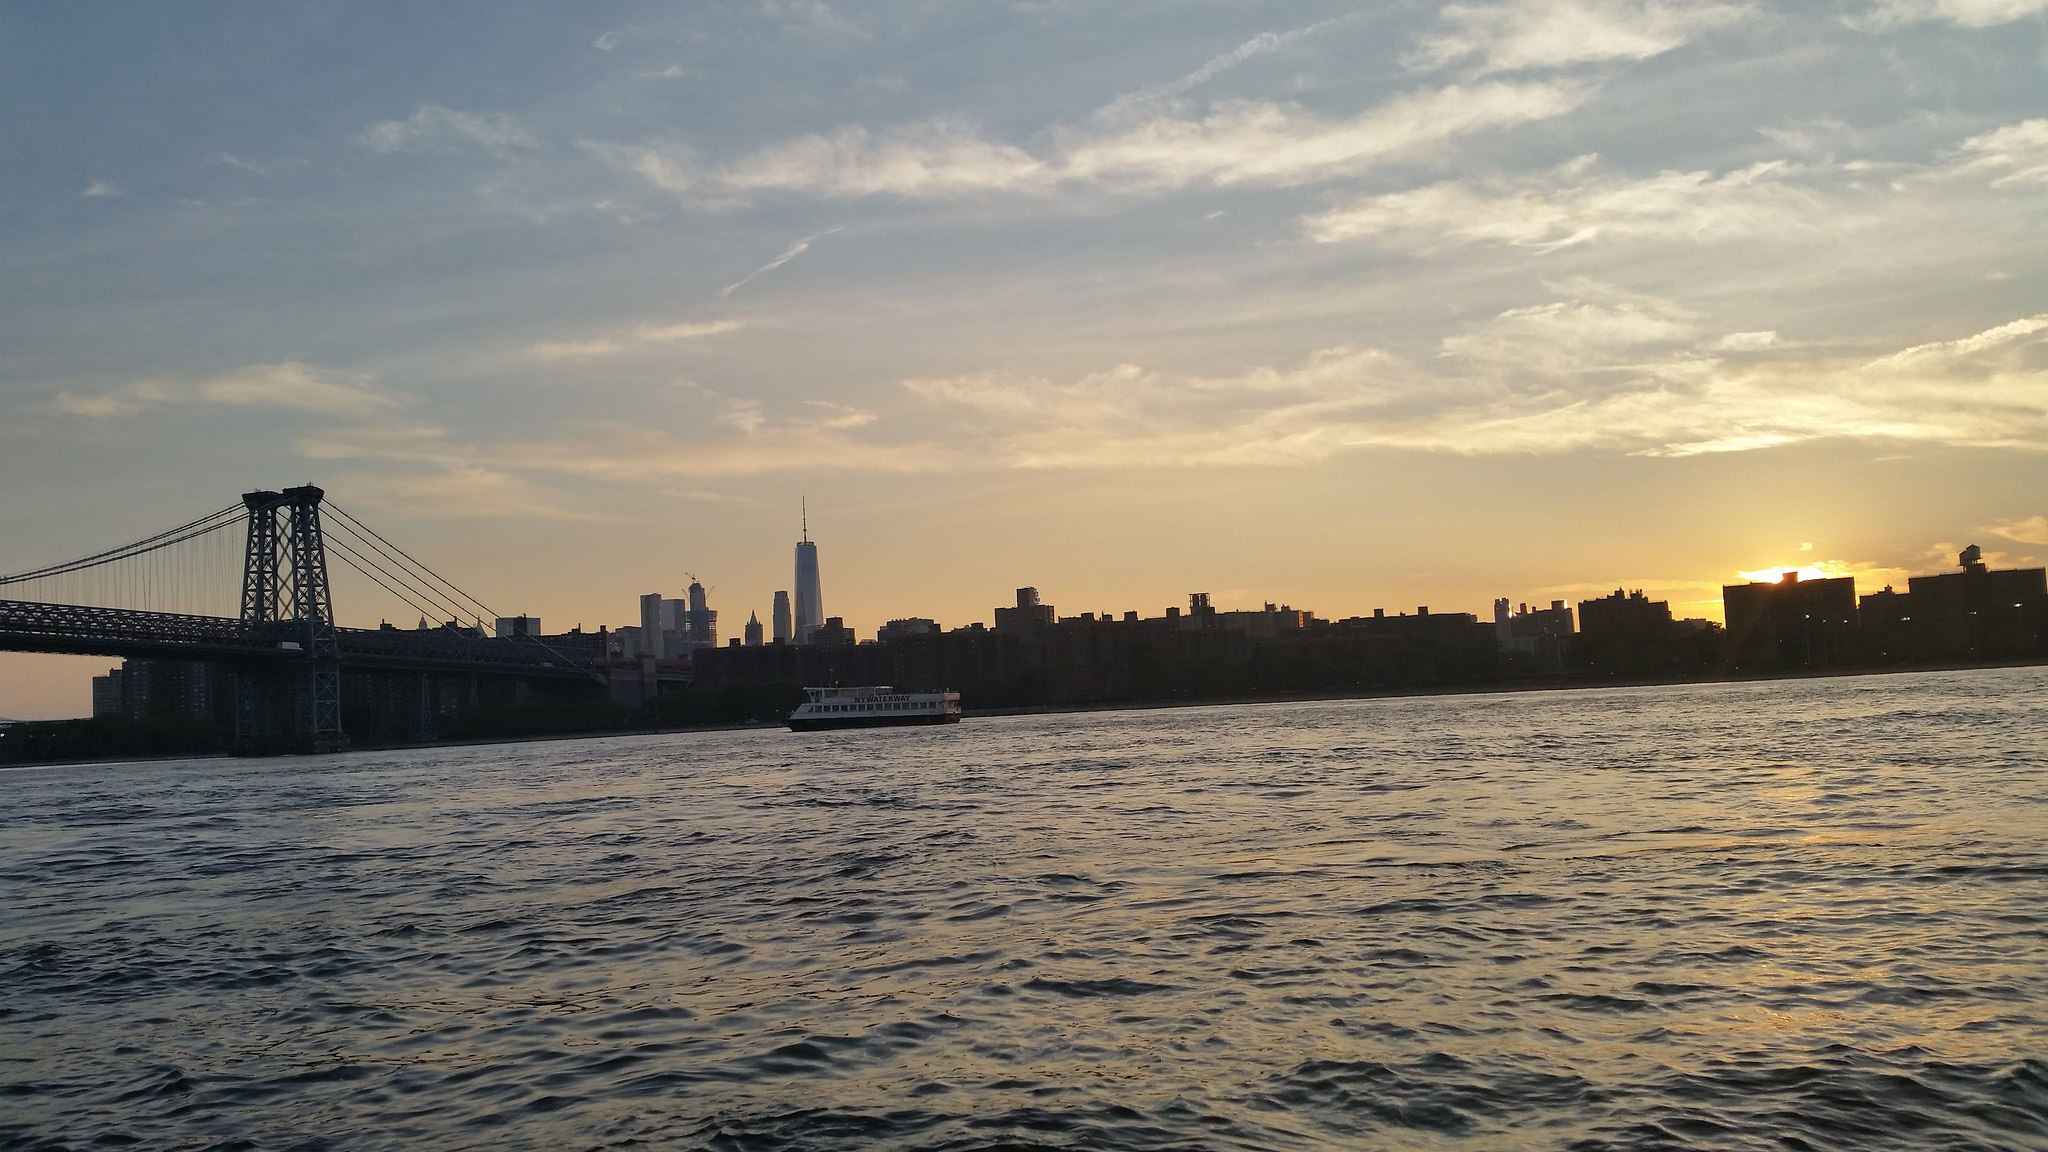 A photo from Grand Ferry Park looking over the water towards New York City at sunset.